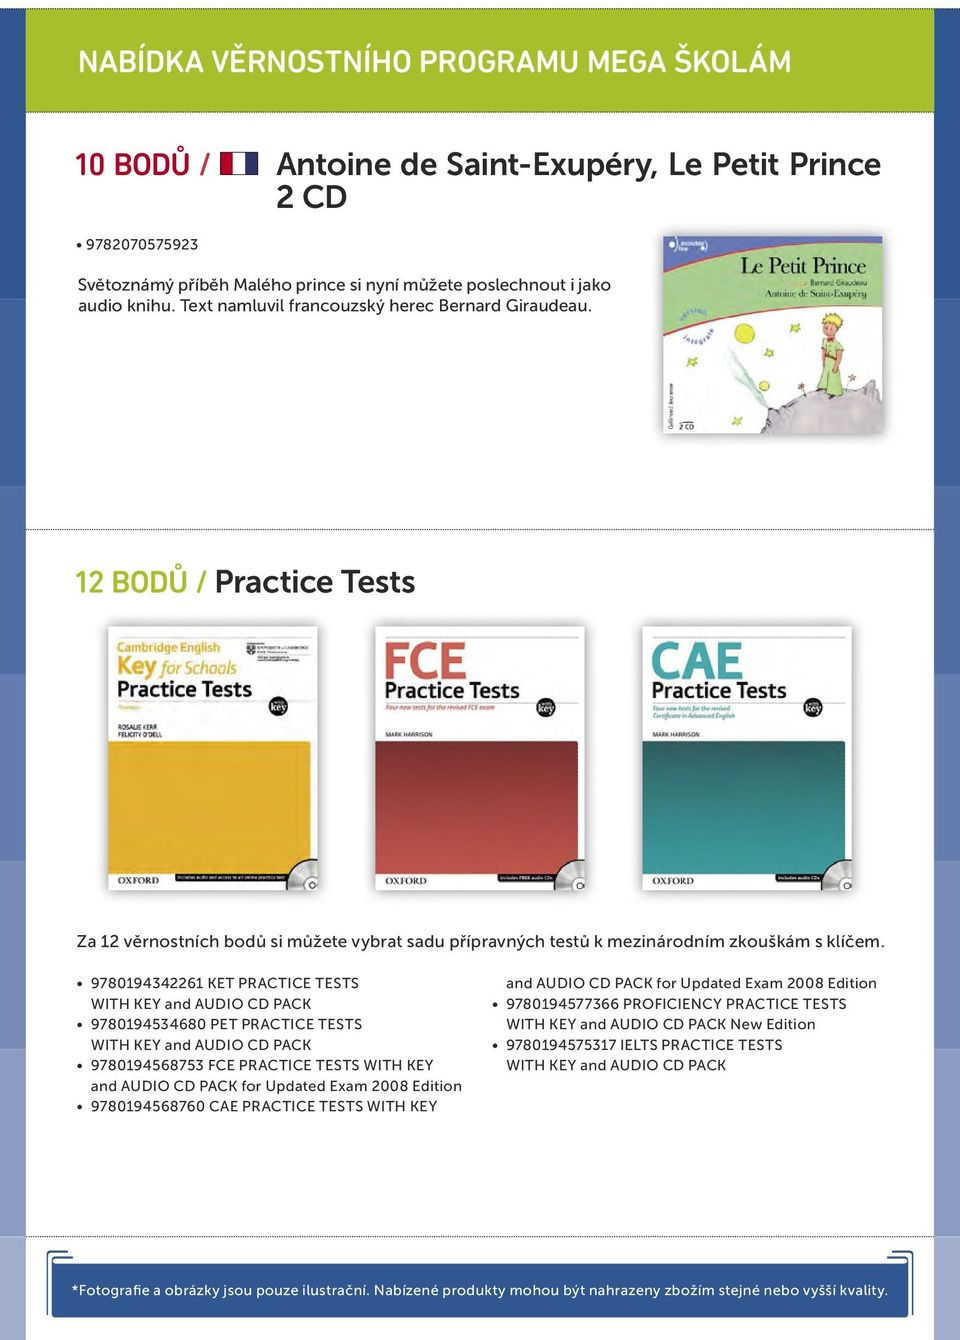 9780194342261 KET PRACTICE TESTS WITH KEY and AUDIO CD PACK 9780194534680 PET PRACTICE TESTS WITH KEY and AUDIO CD PACK 9780194568753 FCE PRACTICE TESTS WITH KEY and AUDIO CD PACK for Updated Exam